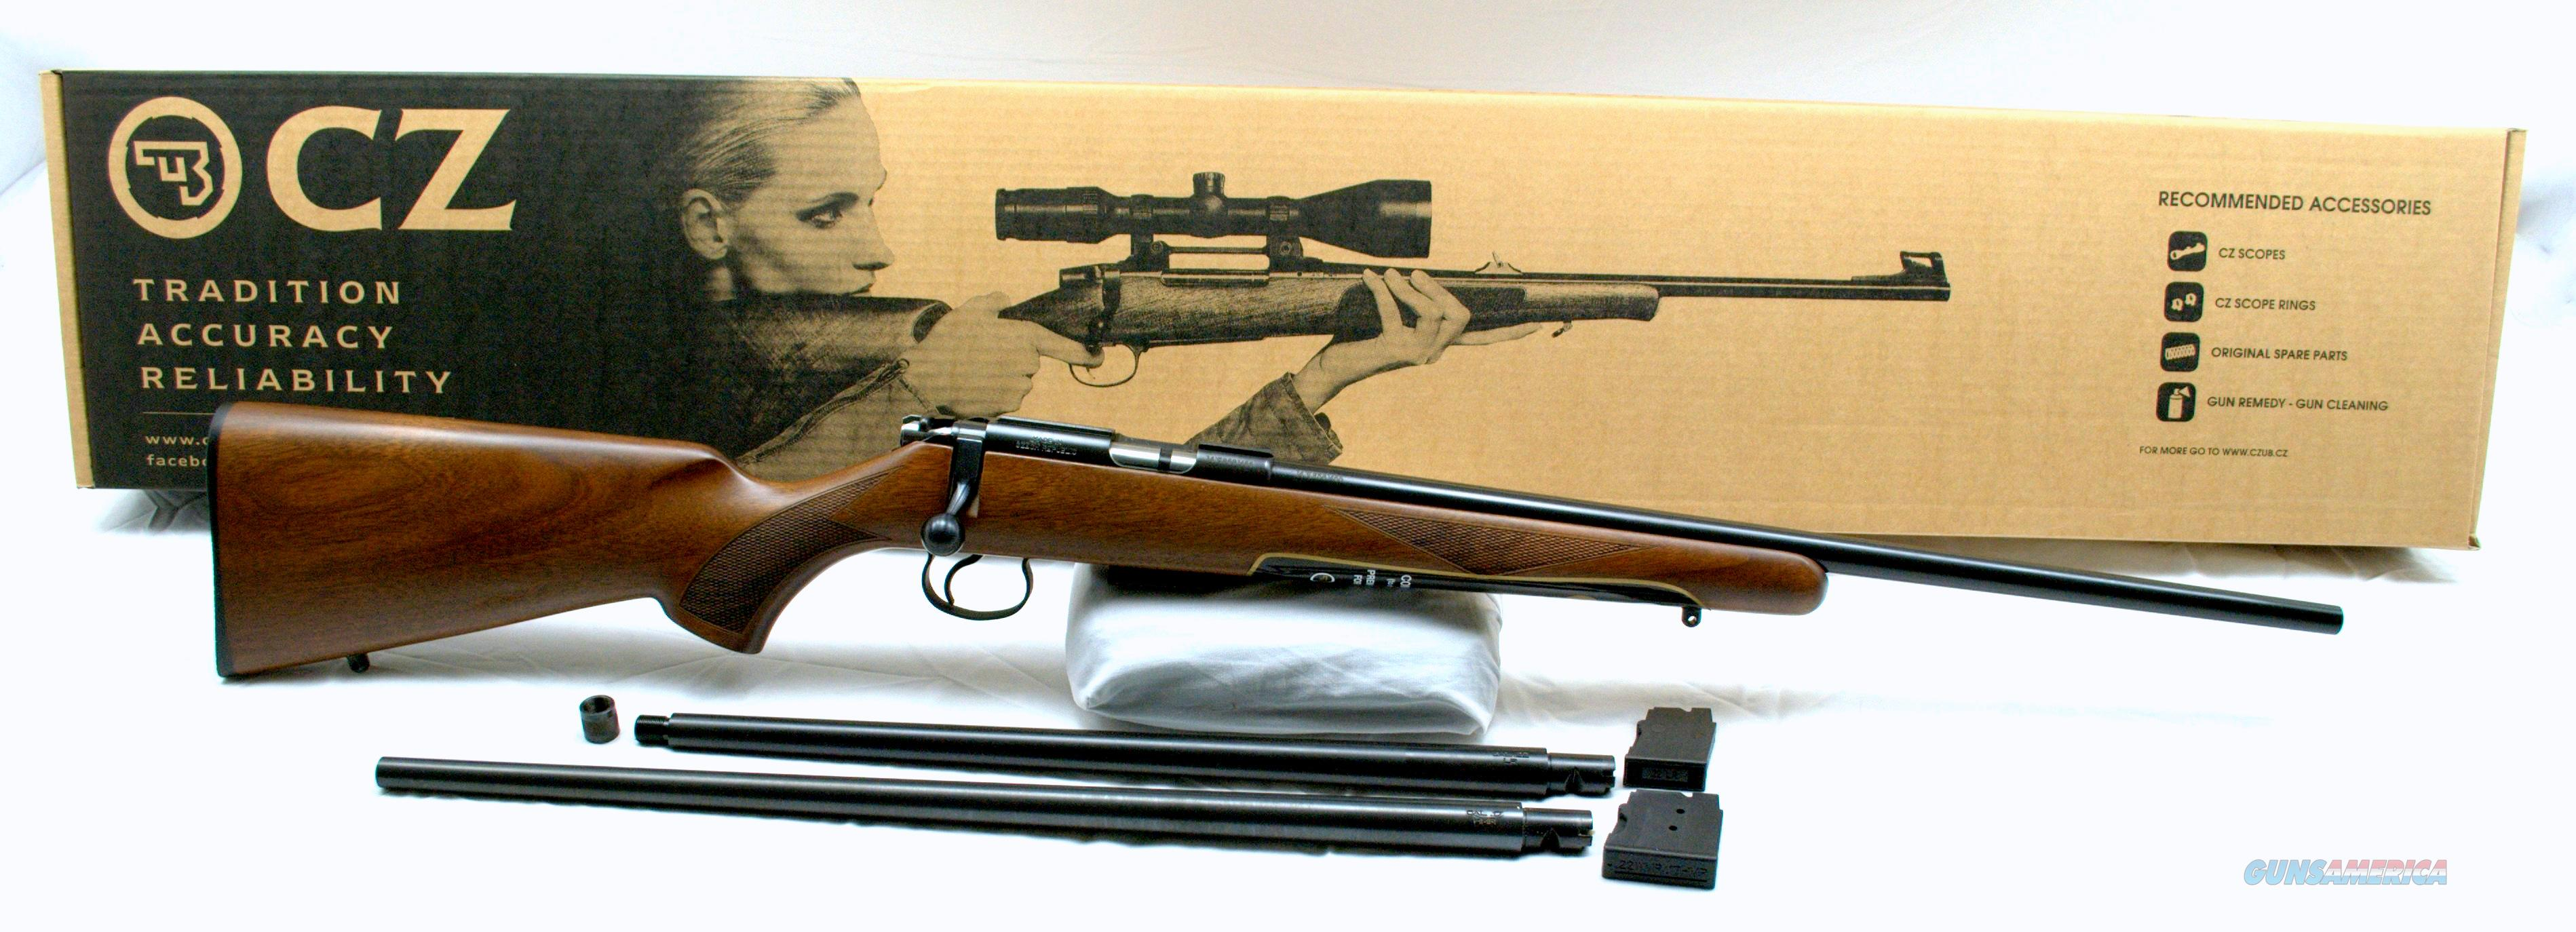 CZ-USA 455 3 BARREL COMBO 17 HMR 22 WMR 22 LR  Guns > Rifles > CZ Rifles